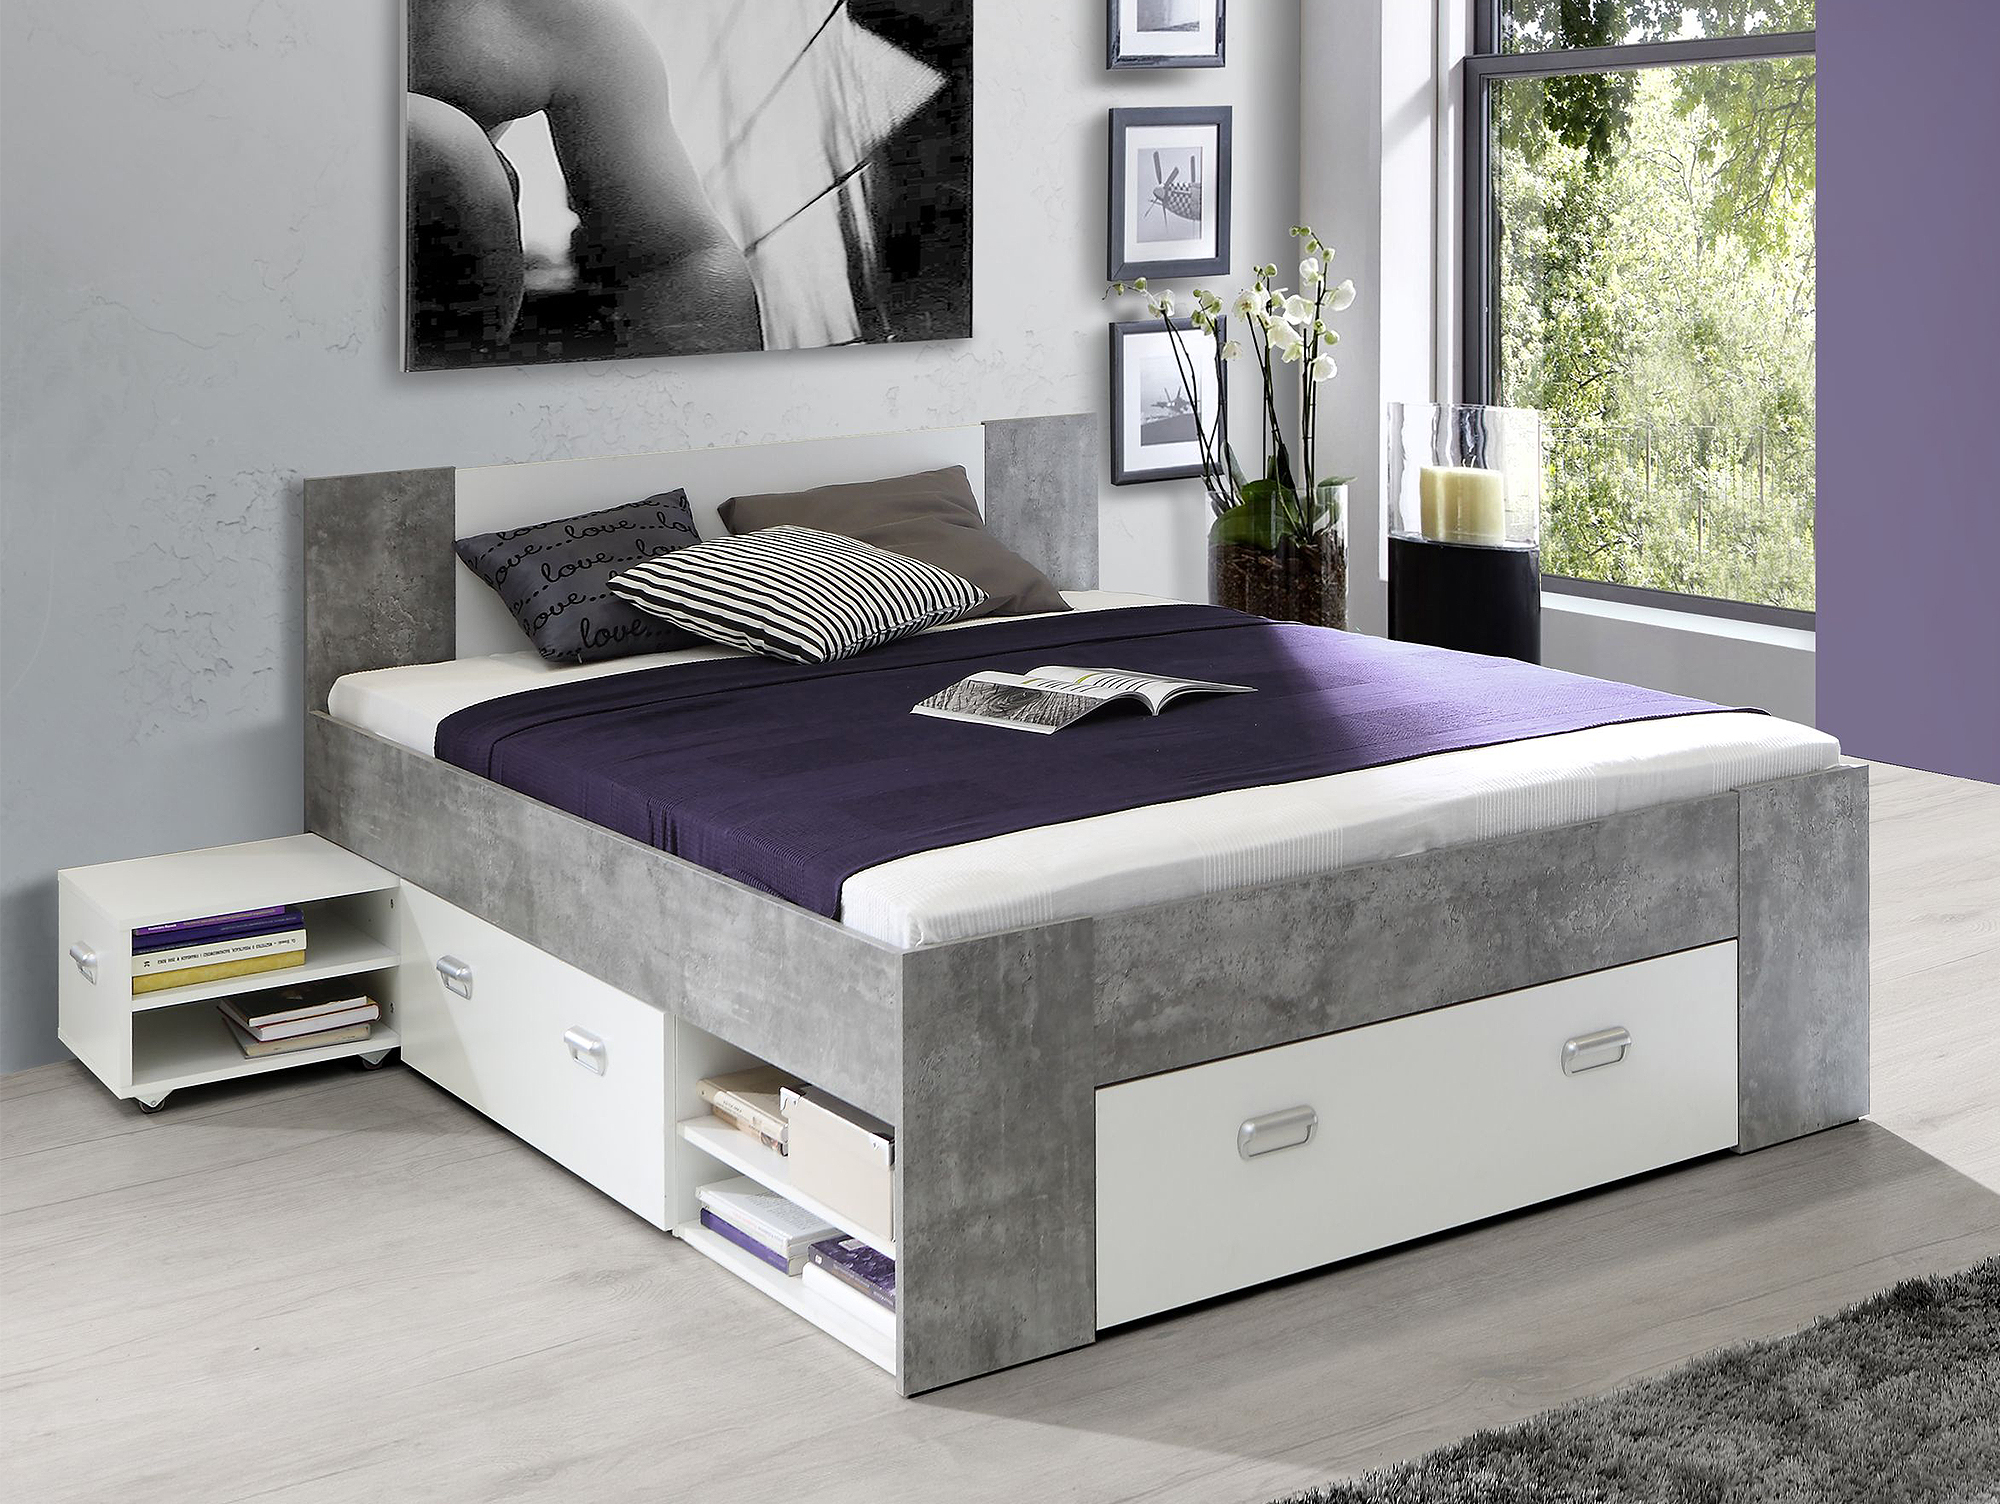 benjamin funktionsbett 140x200 cm beton wei. Black Bedroom Furniture Sets. Home Design Ideas